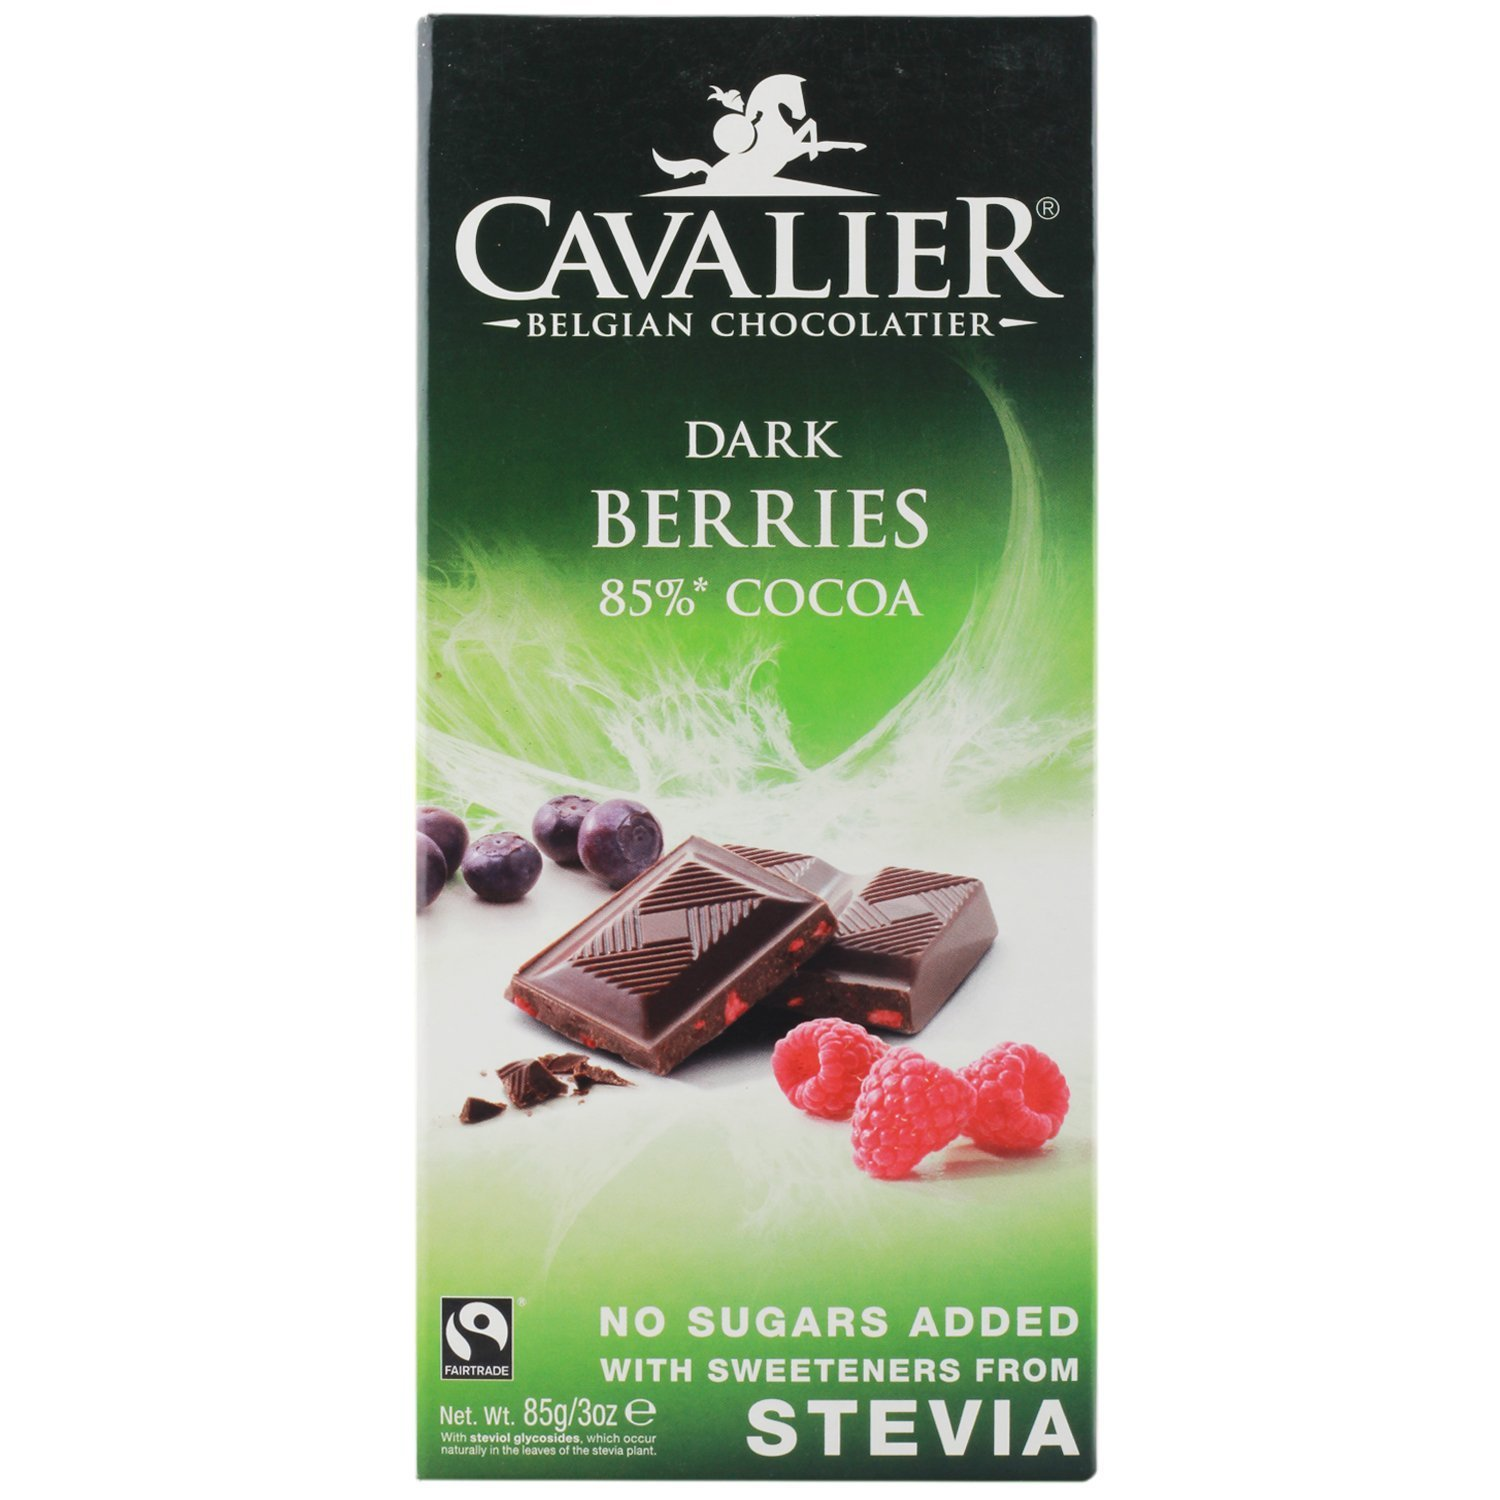 Cavalier - Belgian Dark Berries 85% Cocoa Chocolate Bar - 85g: Amazon.es: Alimentación y bebidas